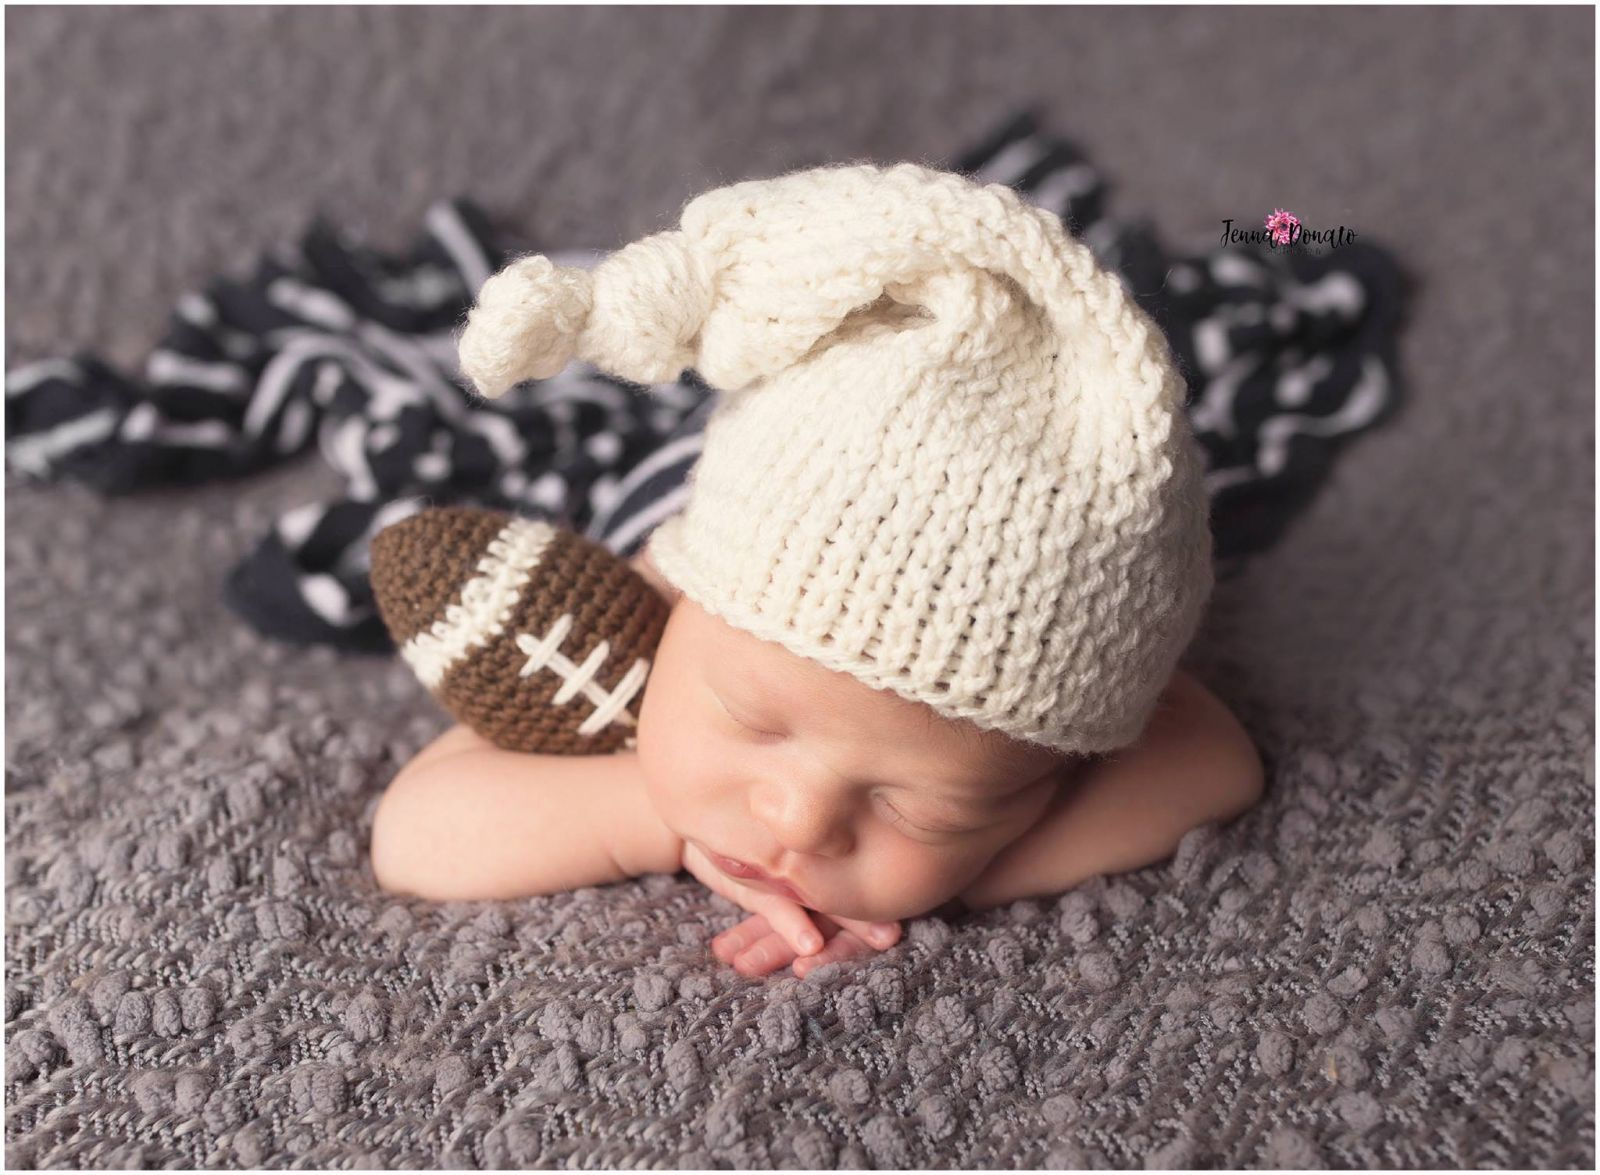 Free Knitting Patterns For Newborn Hats Newborn Prop Hat Knitting Pattern Free Knitting Patterns Handy